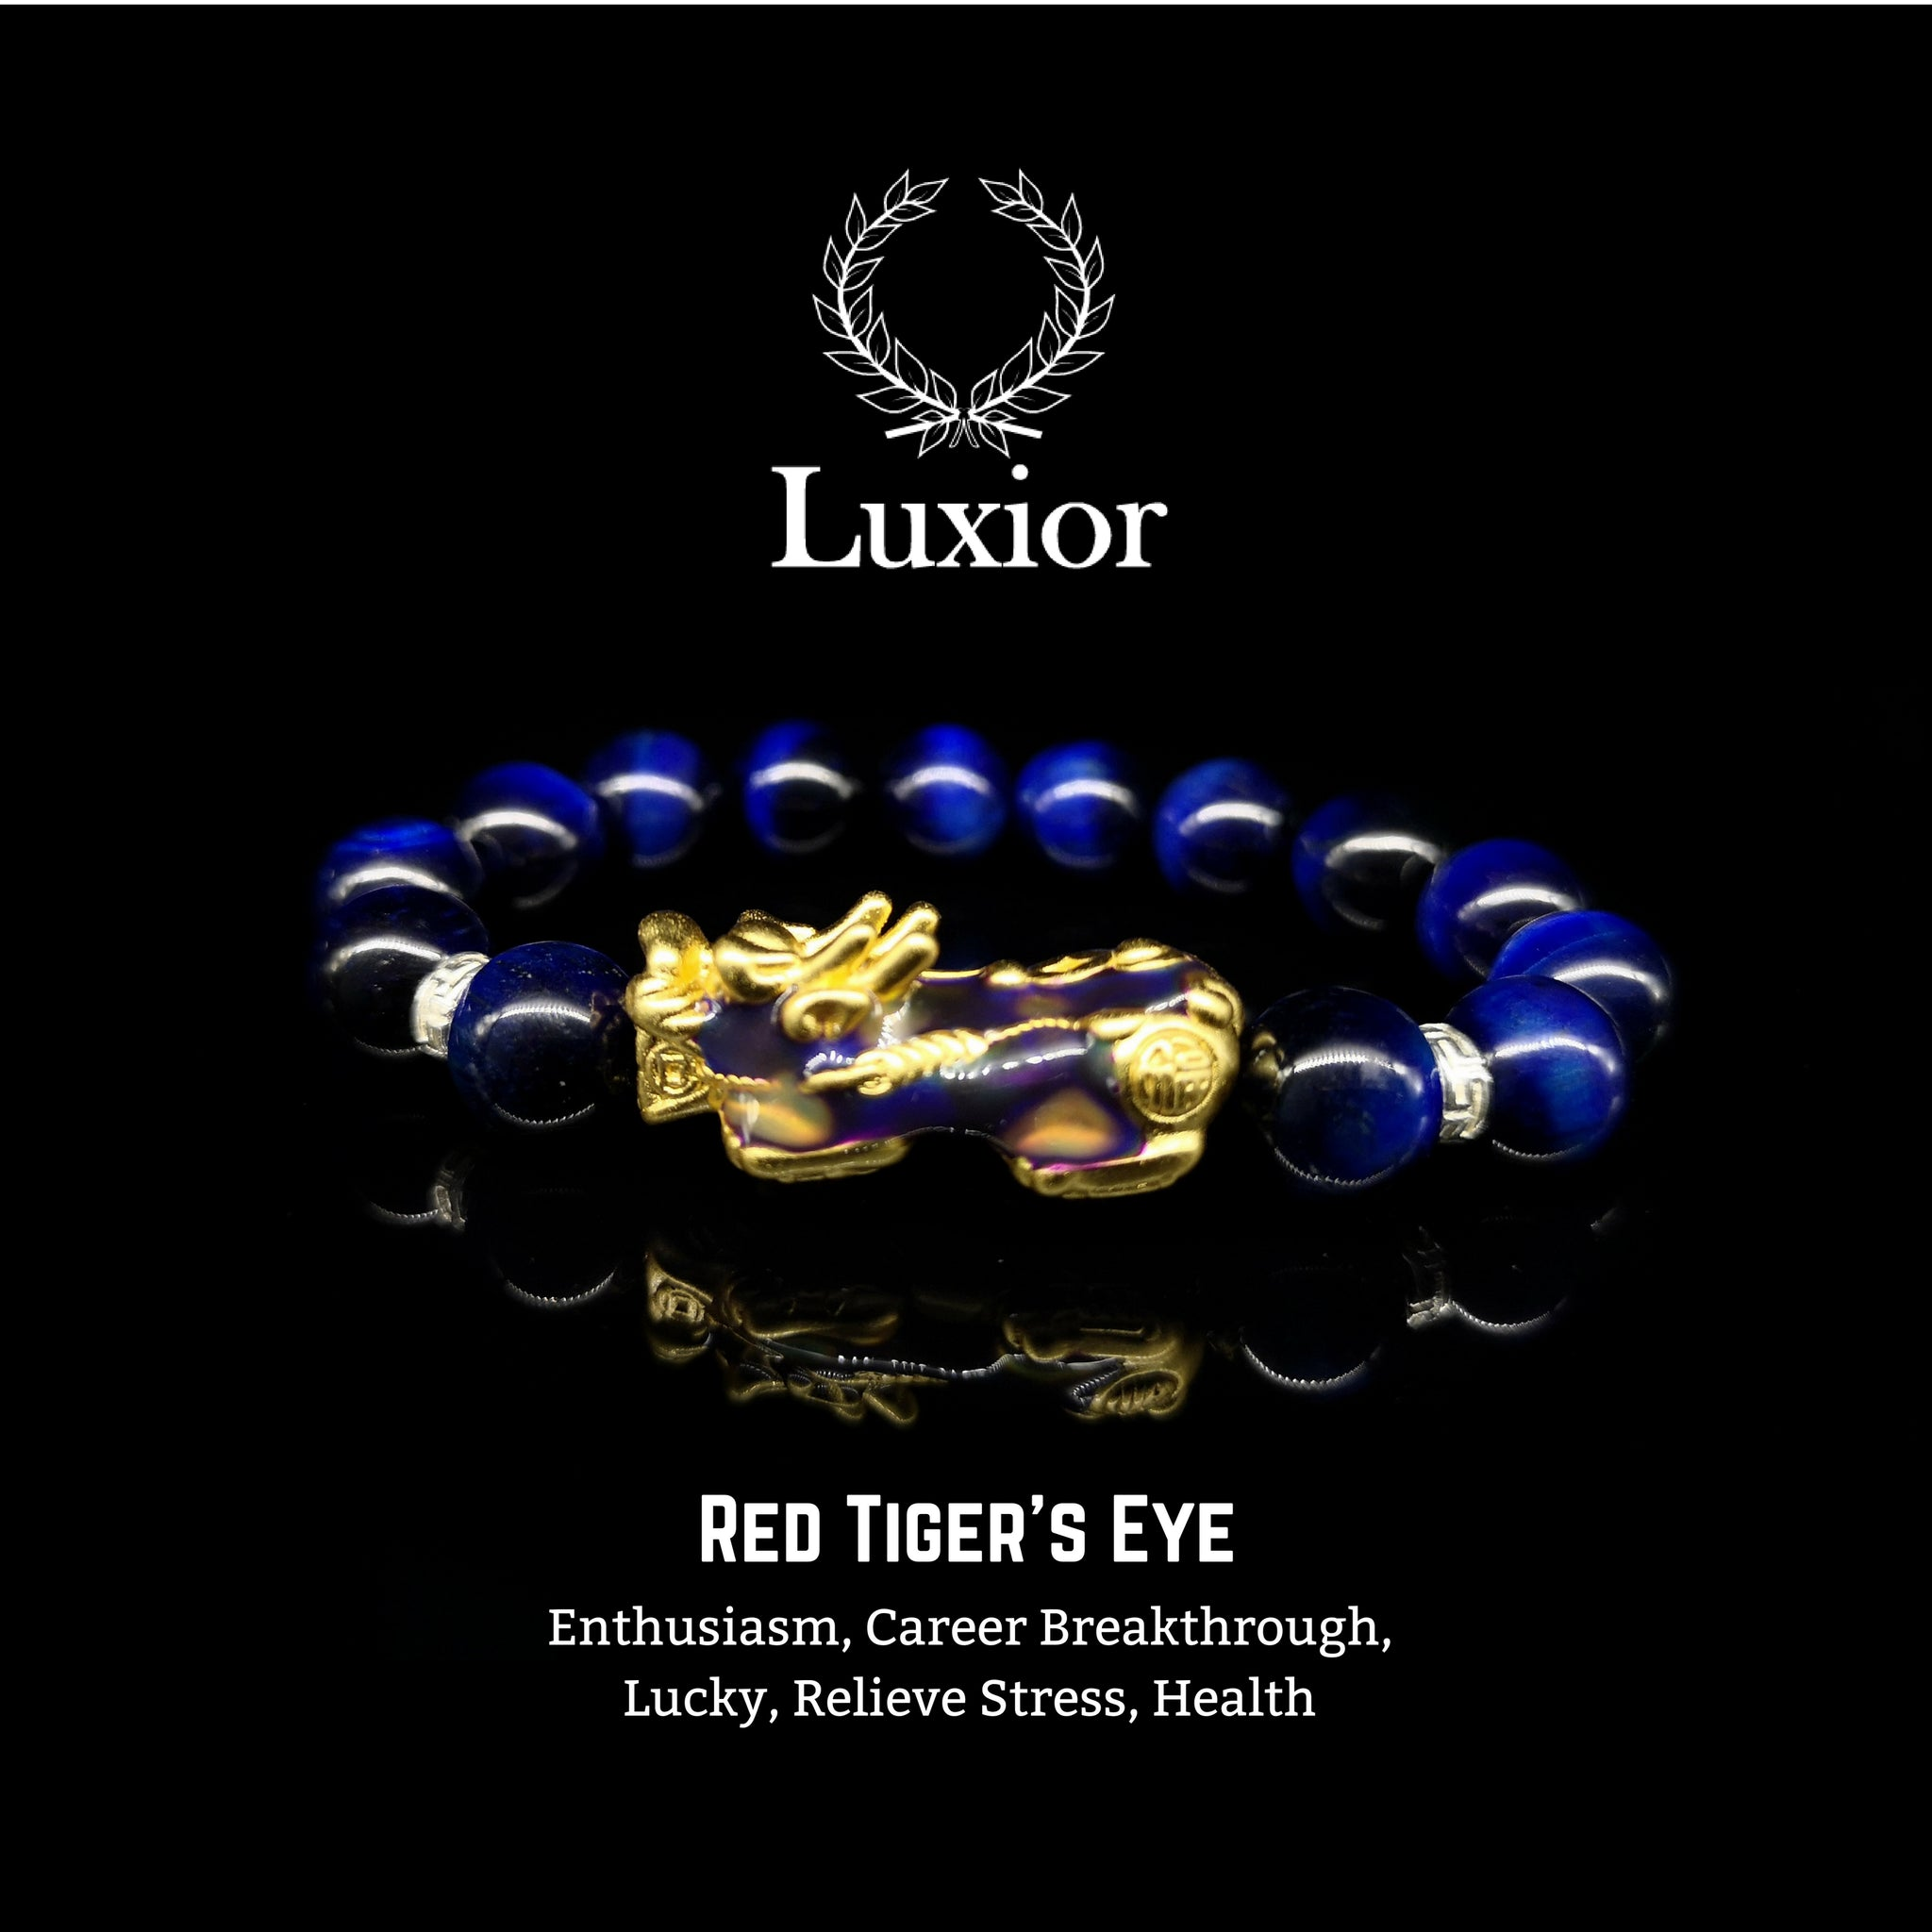 BLUE TIGER'S EYE LUXIOR BRACELET (PIXIU GOLD)